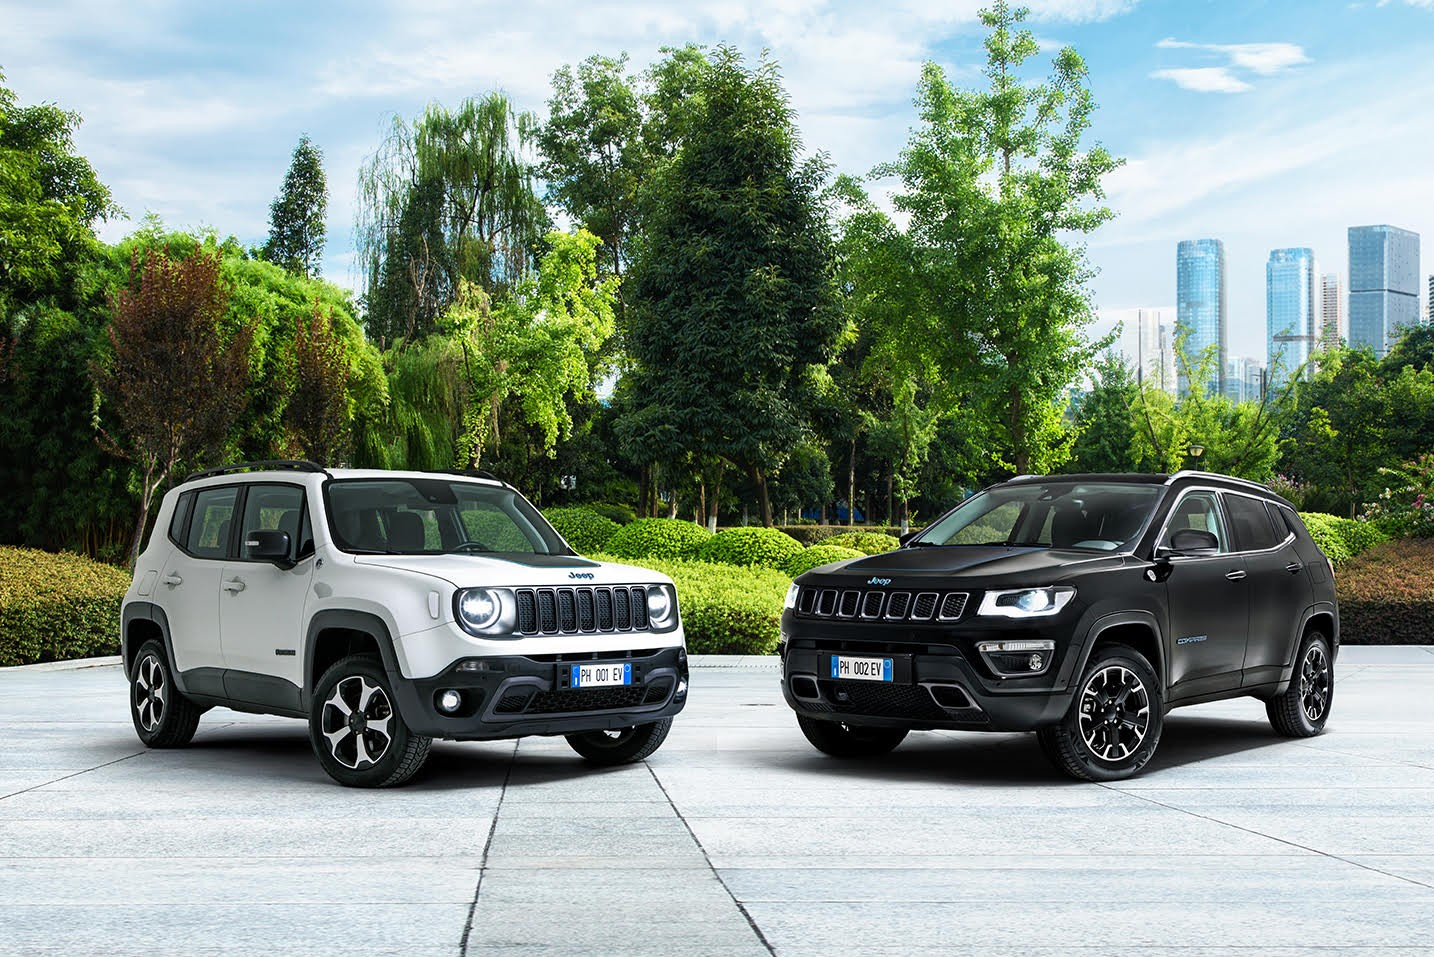 The hybrid-powered Jeep 4xe models are now available for purchase in Italy and Spain, and the other countries should follow soon. Only the First Edition spec is available right now, so you may want to wait until the summer if you want to save money.